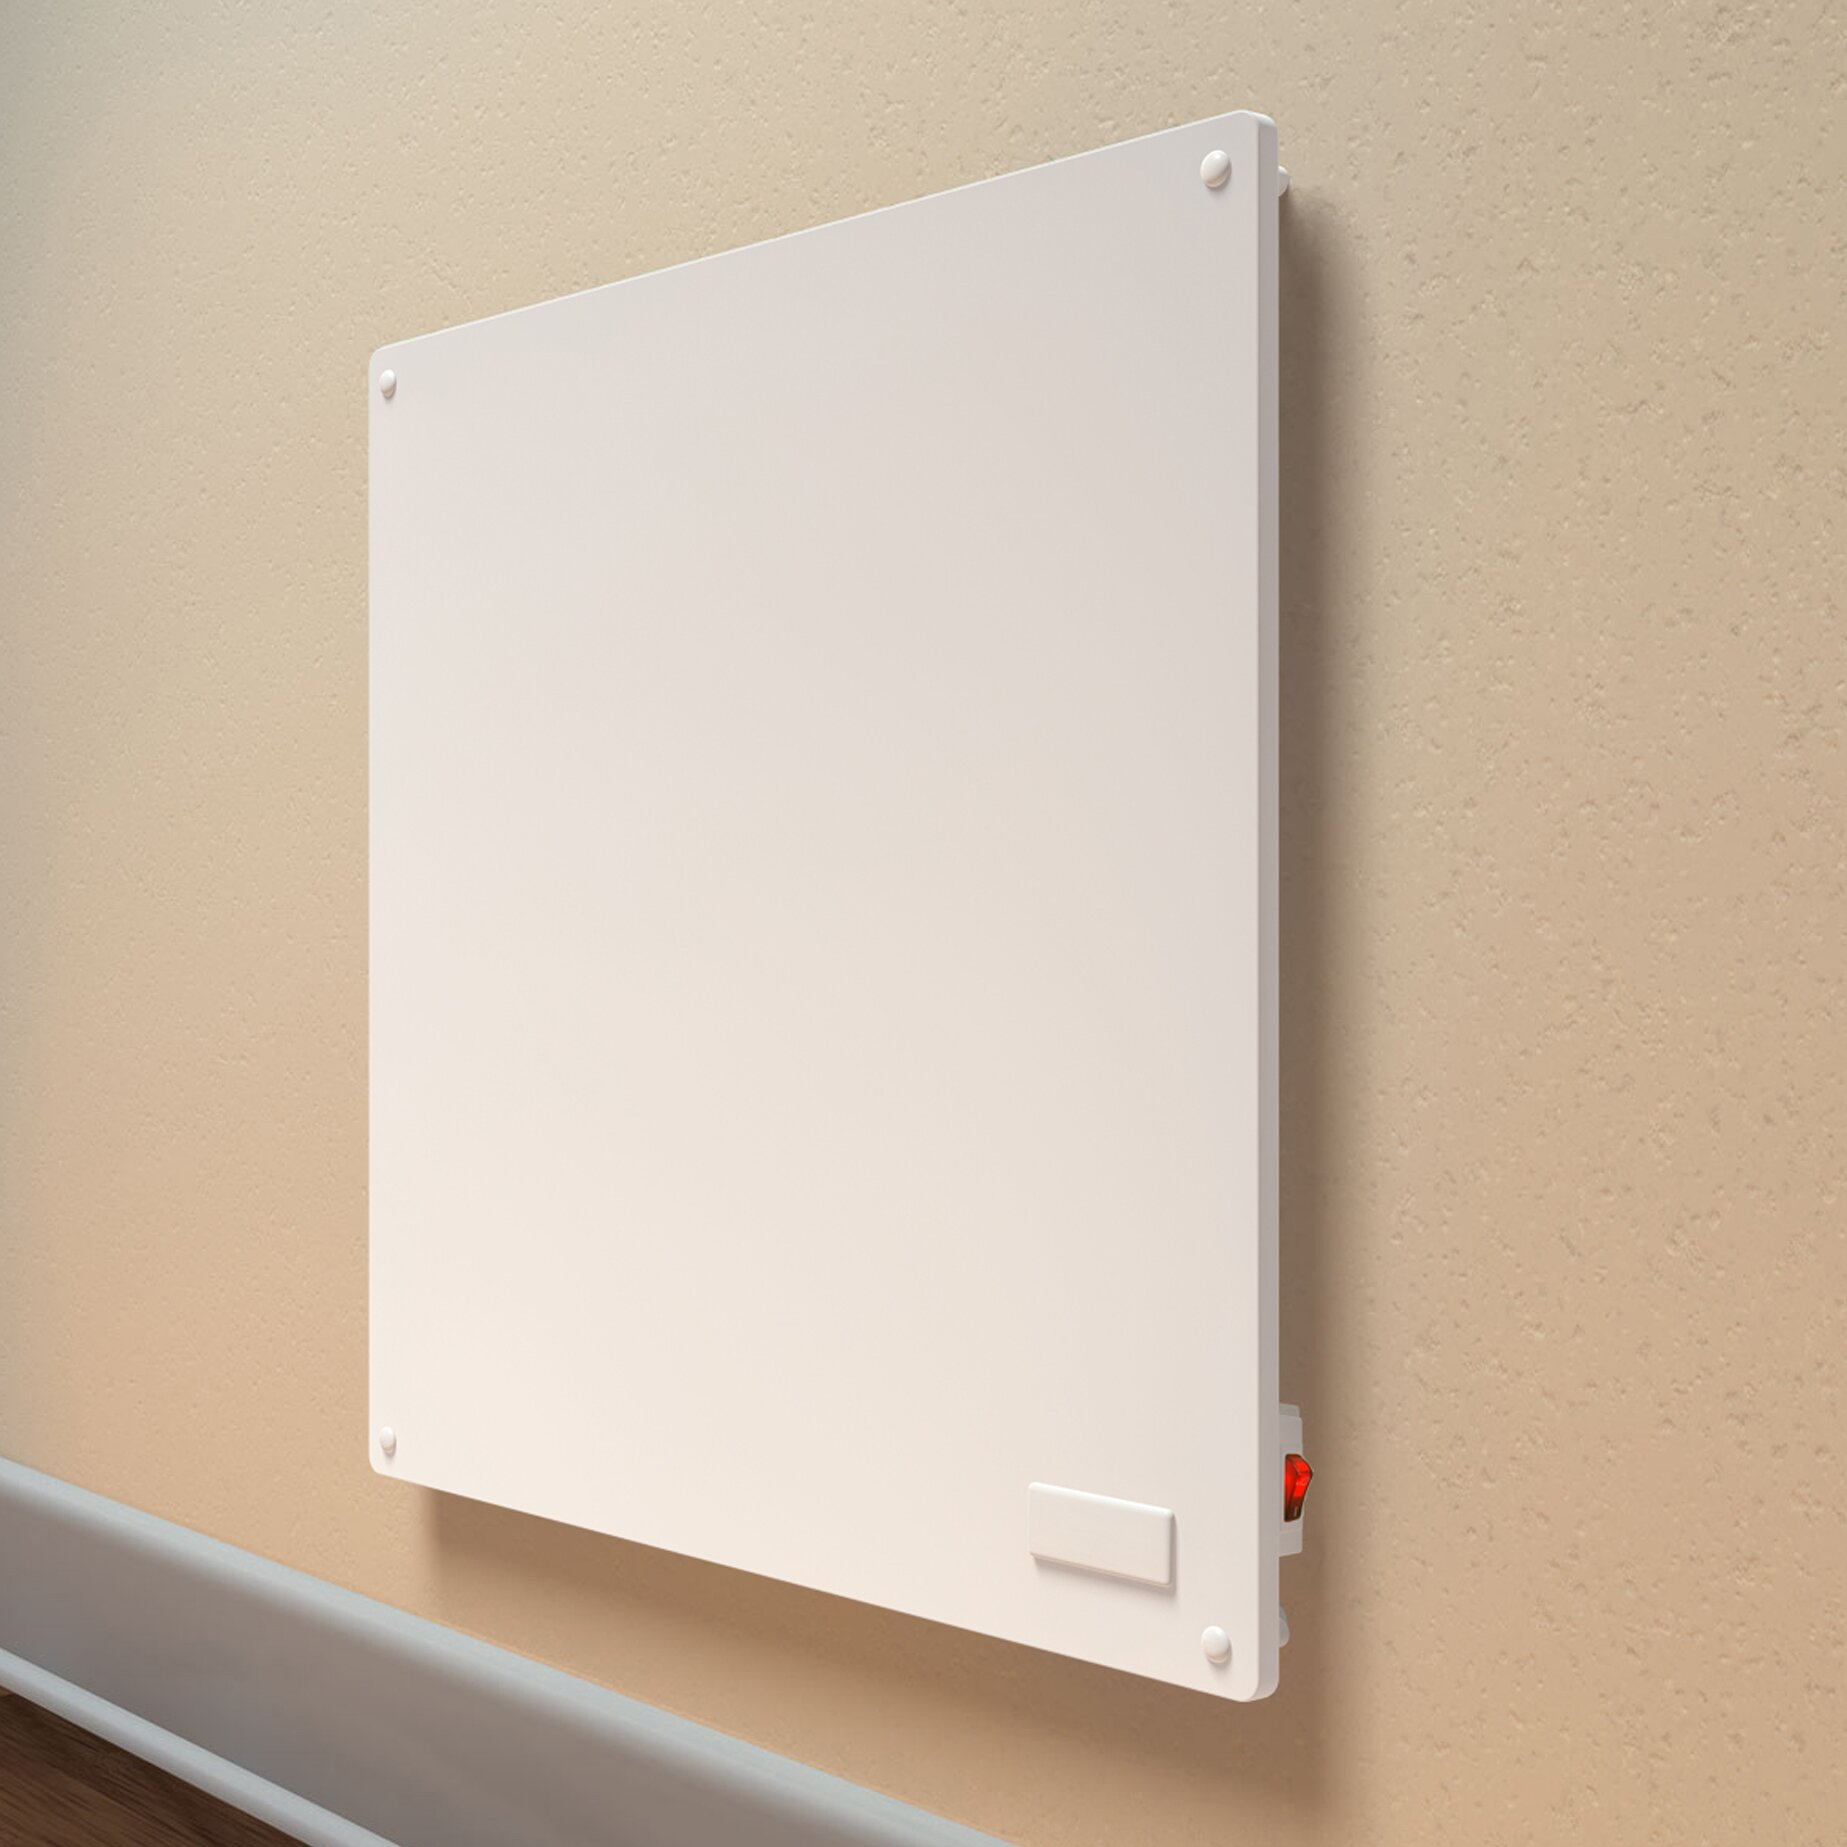 wall mounted electric panel heaters reviews